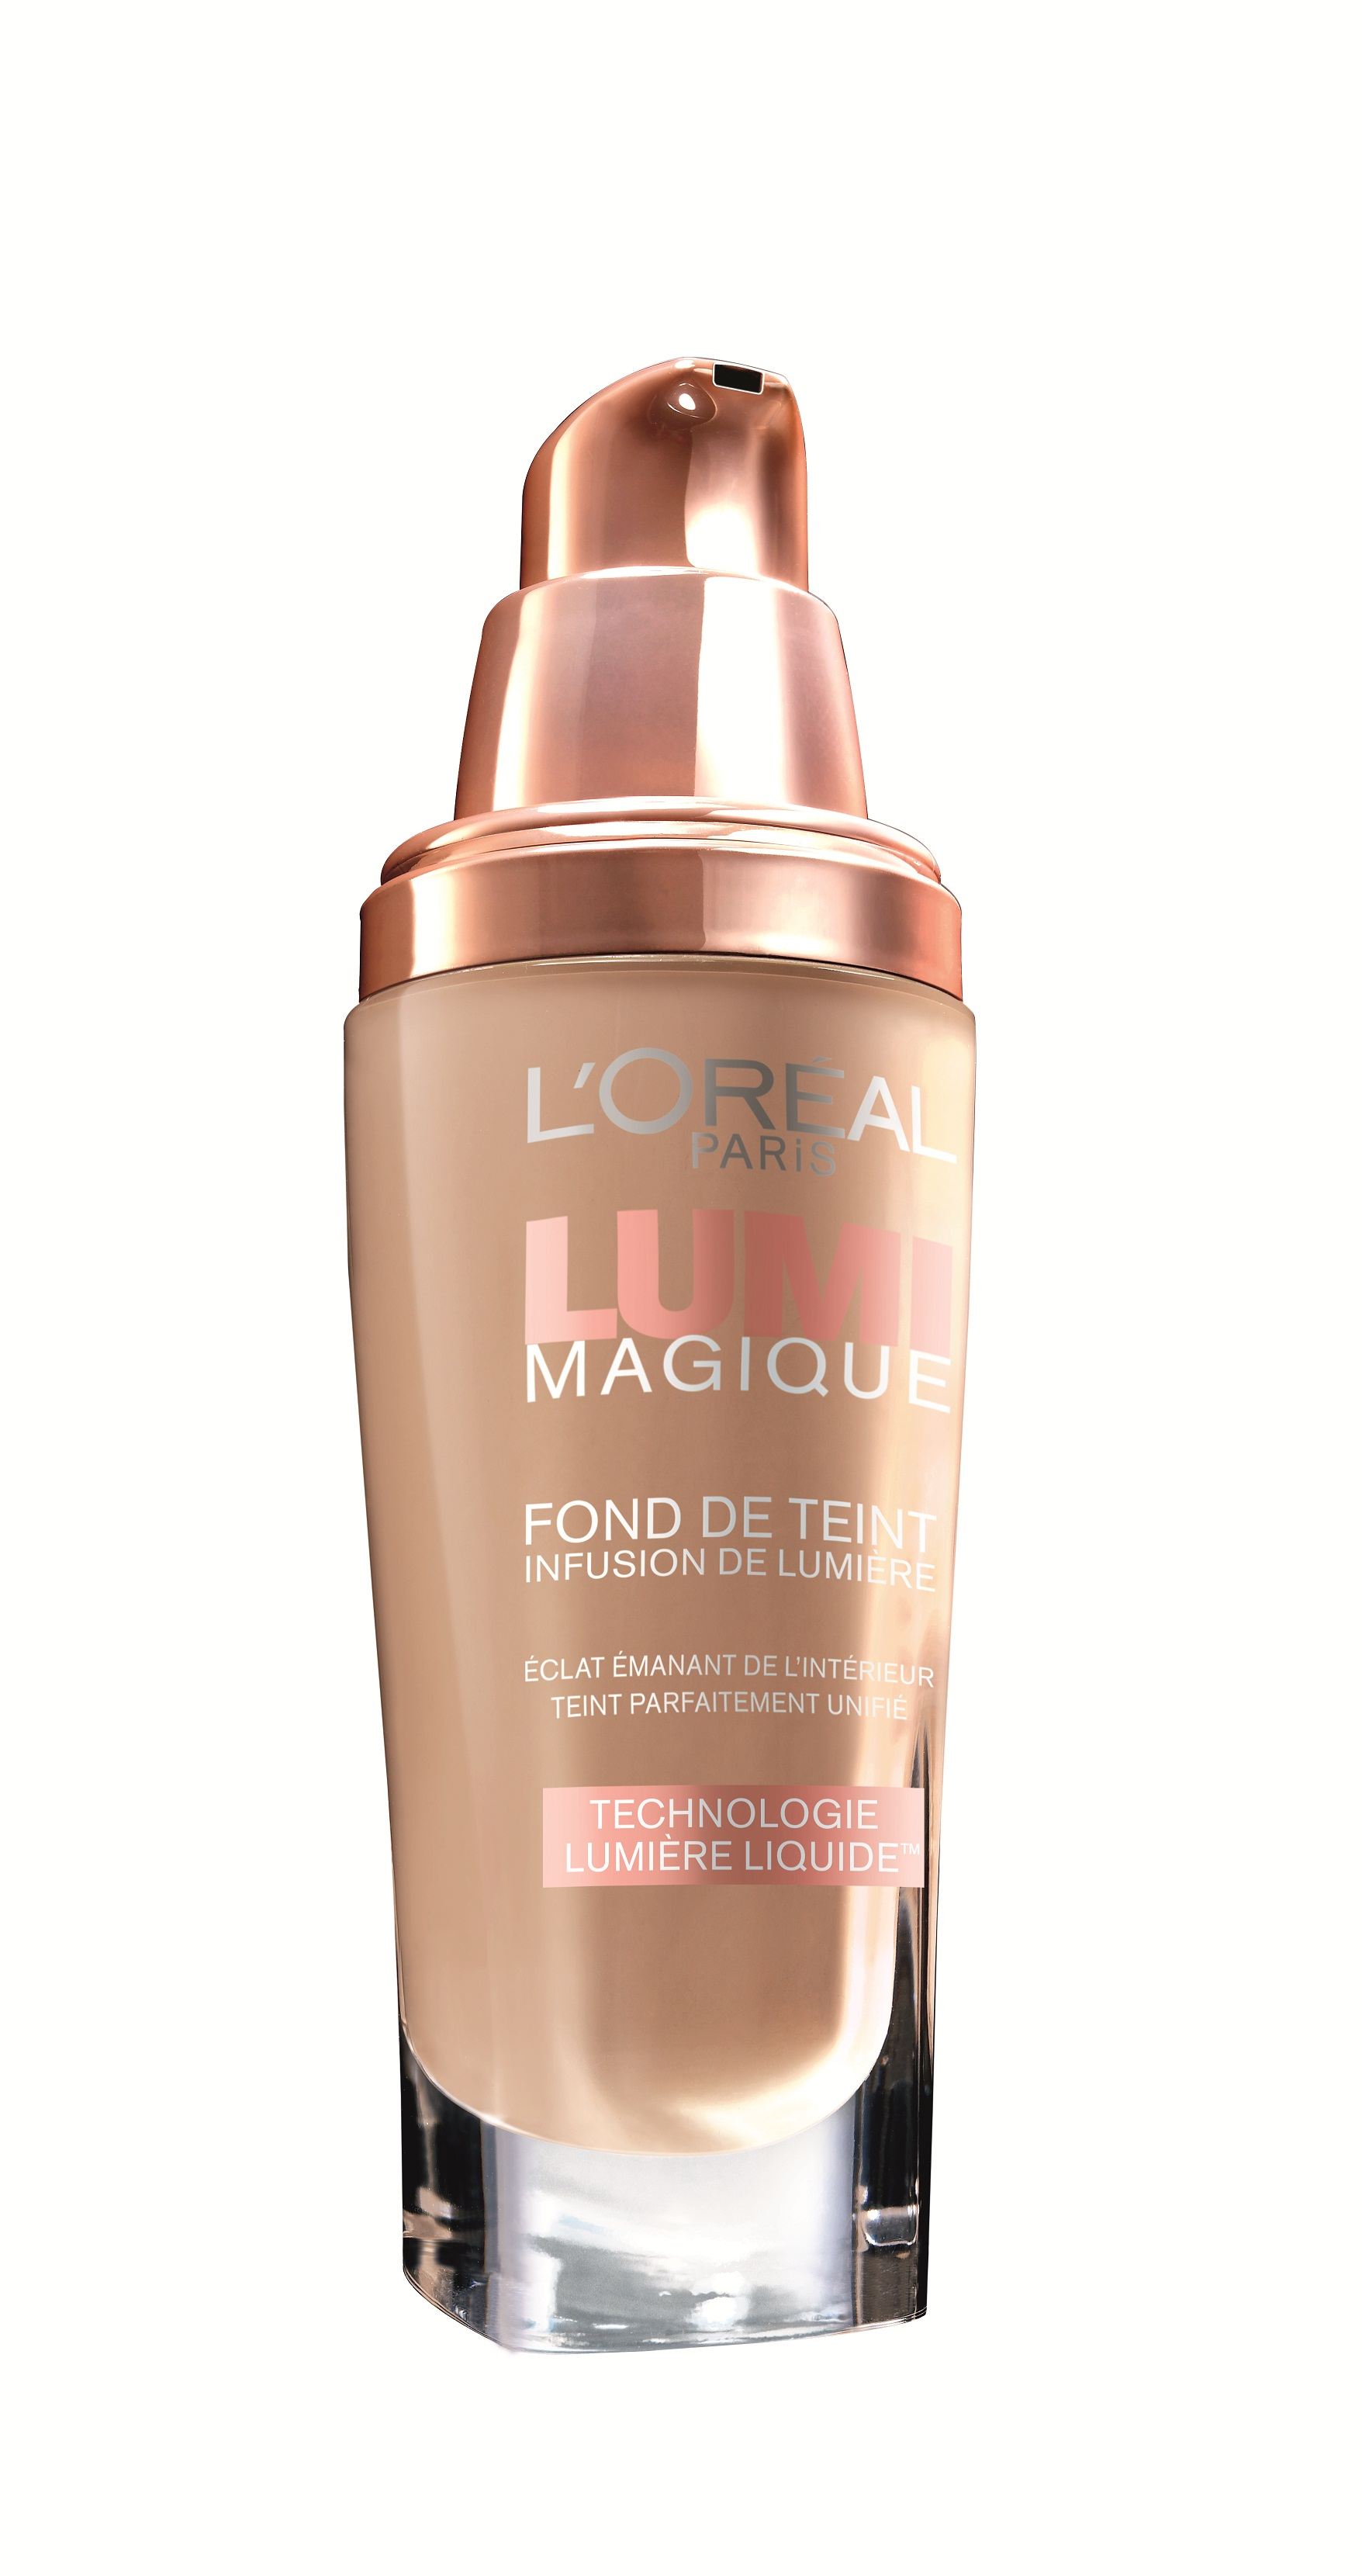 L'Oreal Lumi Magique foundation review | Lipgloss is my Life